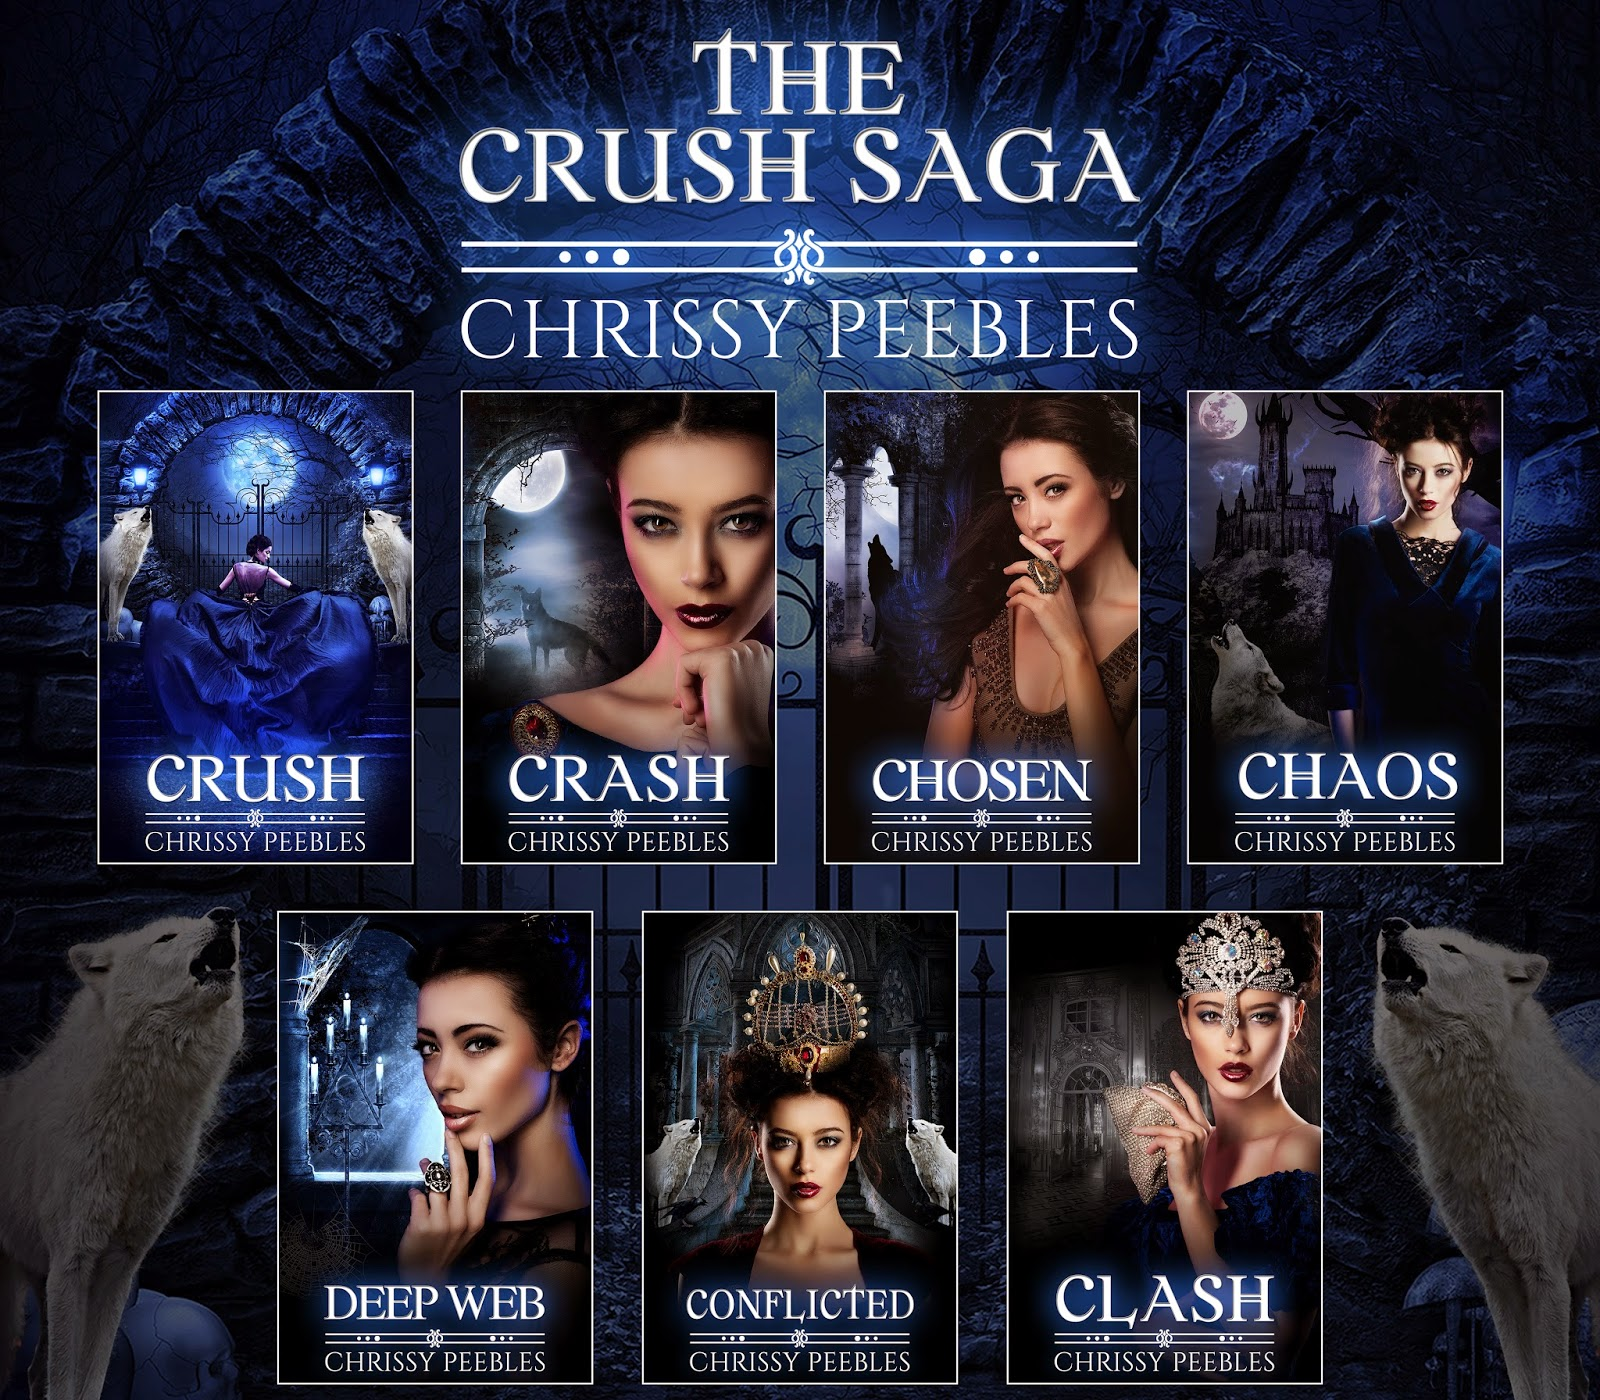 the crush saga by chrissy peebles